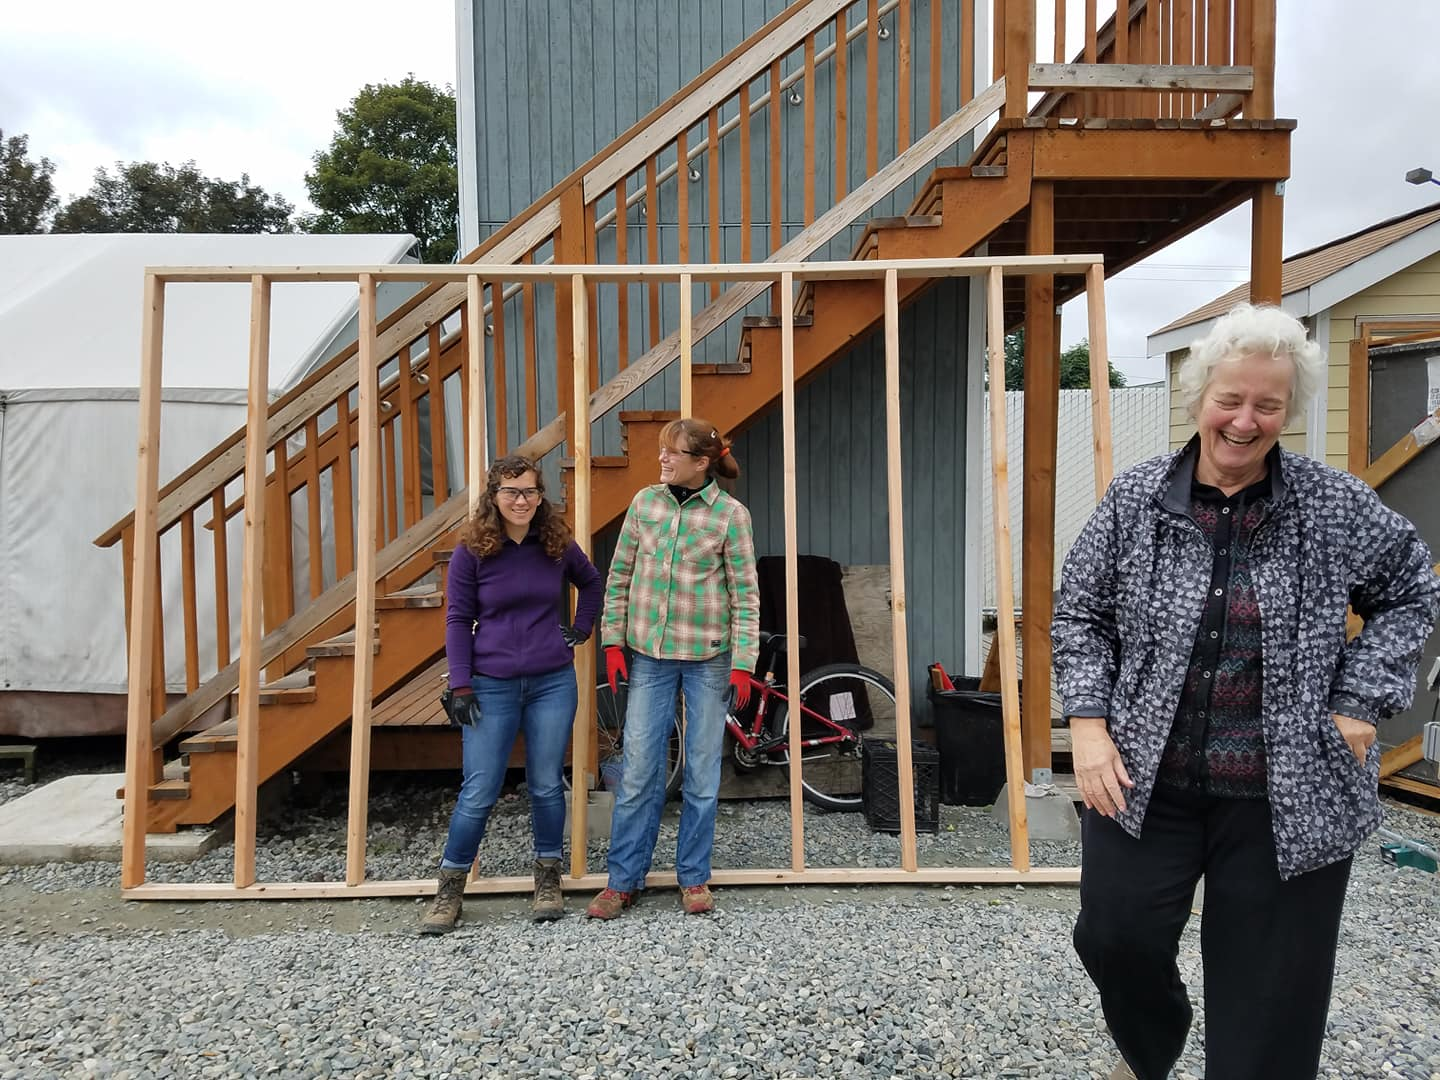 Giving People Forced Into Homelessness A Chance To Rebuild